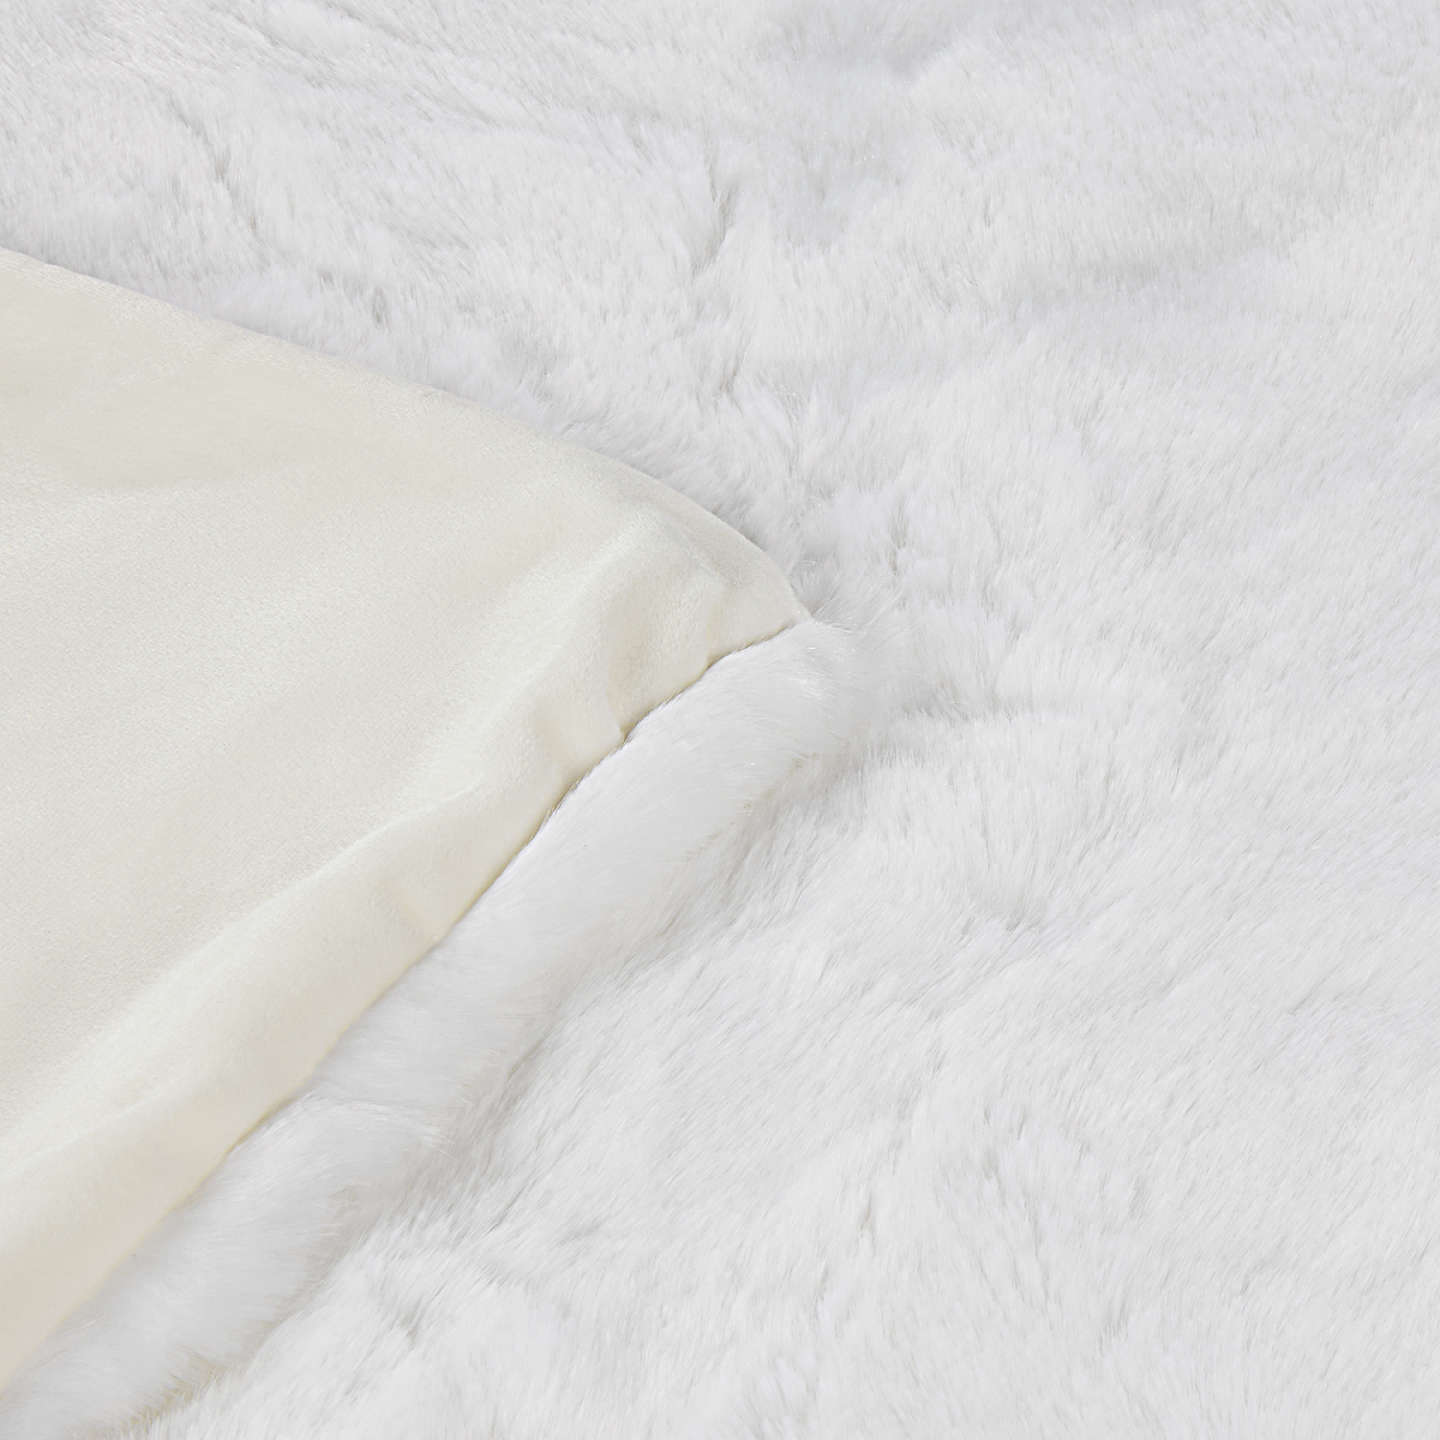 BuyJohn Lewis Faux Fur Throw, L200 x W150cm, White Online at johnlewis.com